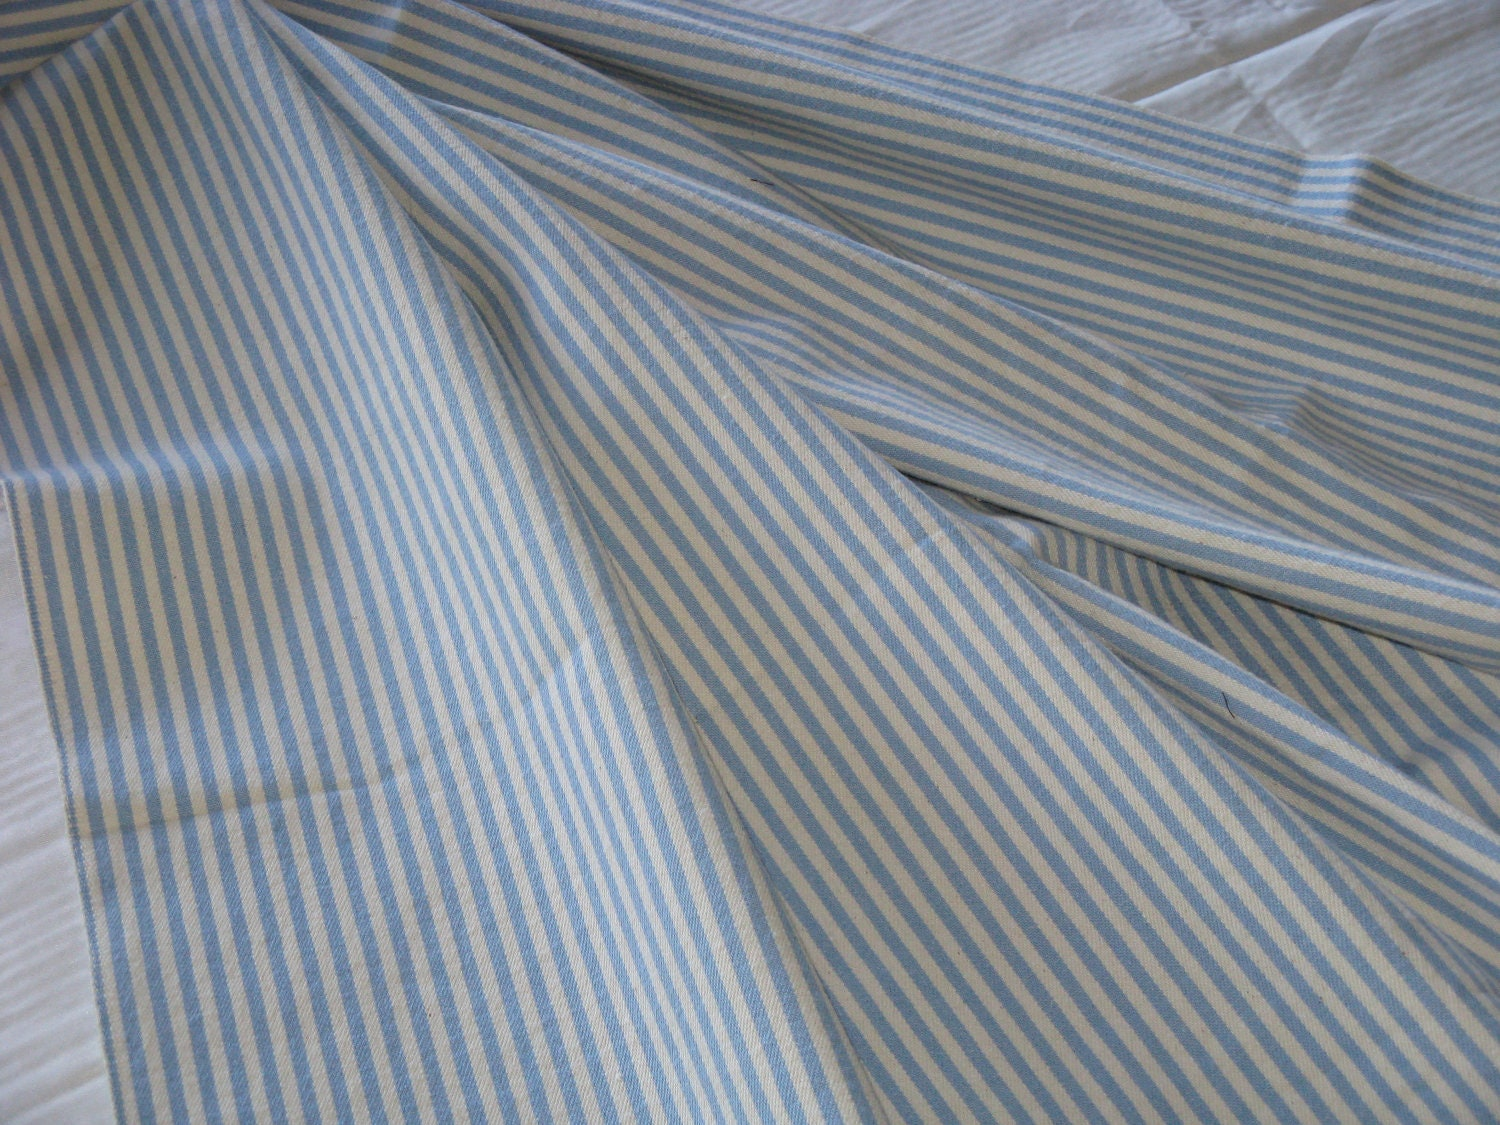 Vintage ticking fabric cotton light blue and white stripes for Ticking fabric